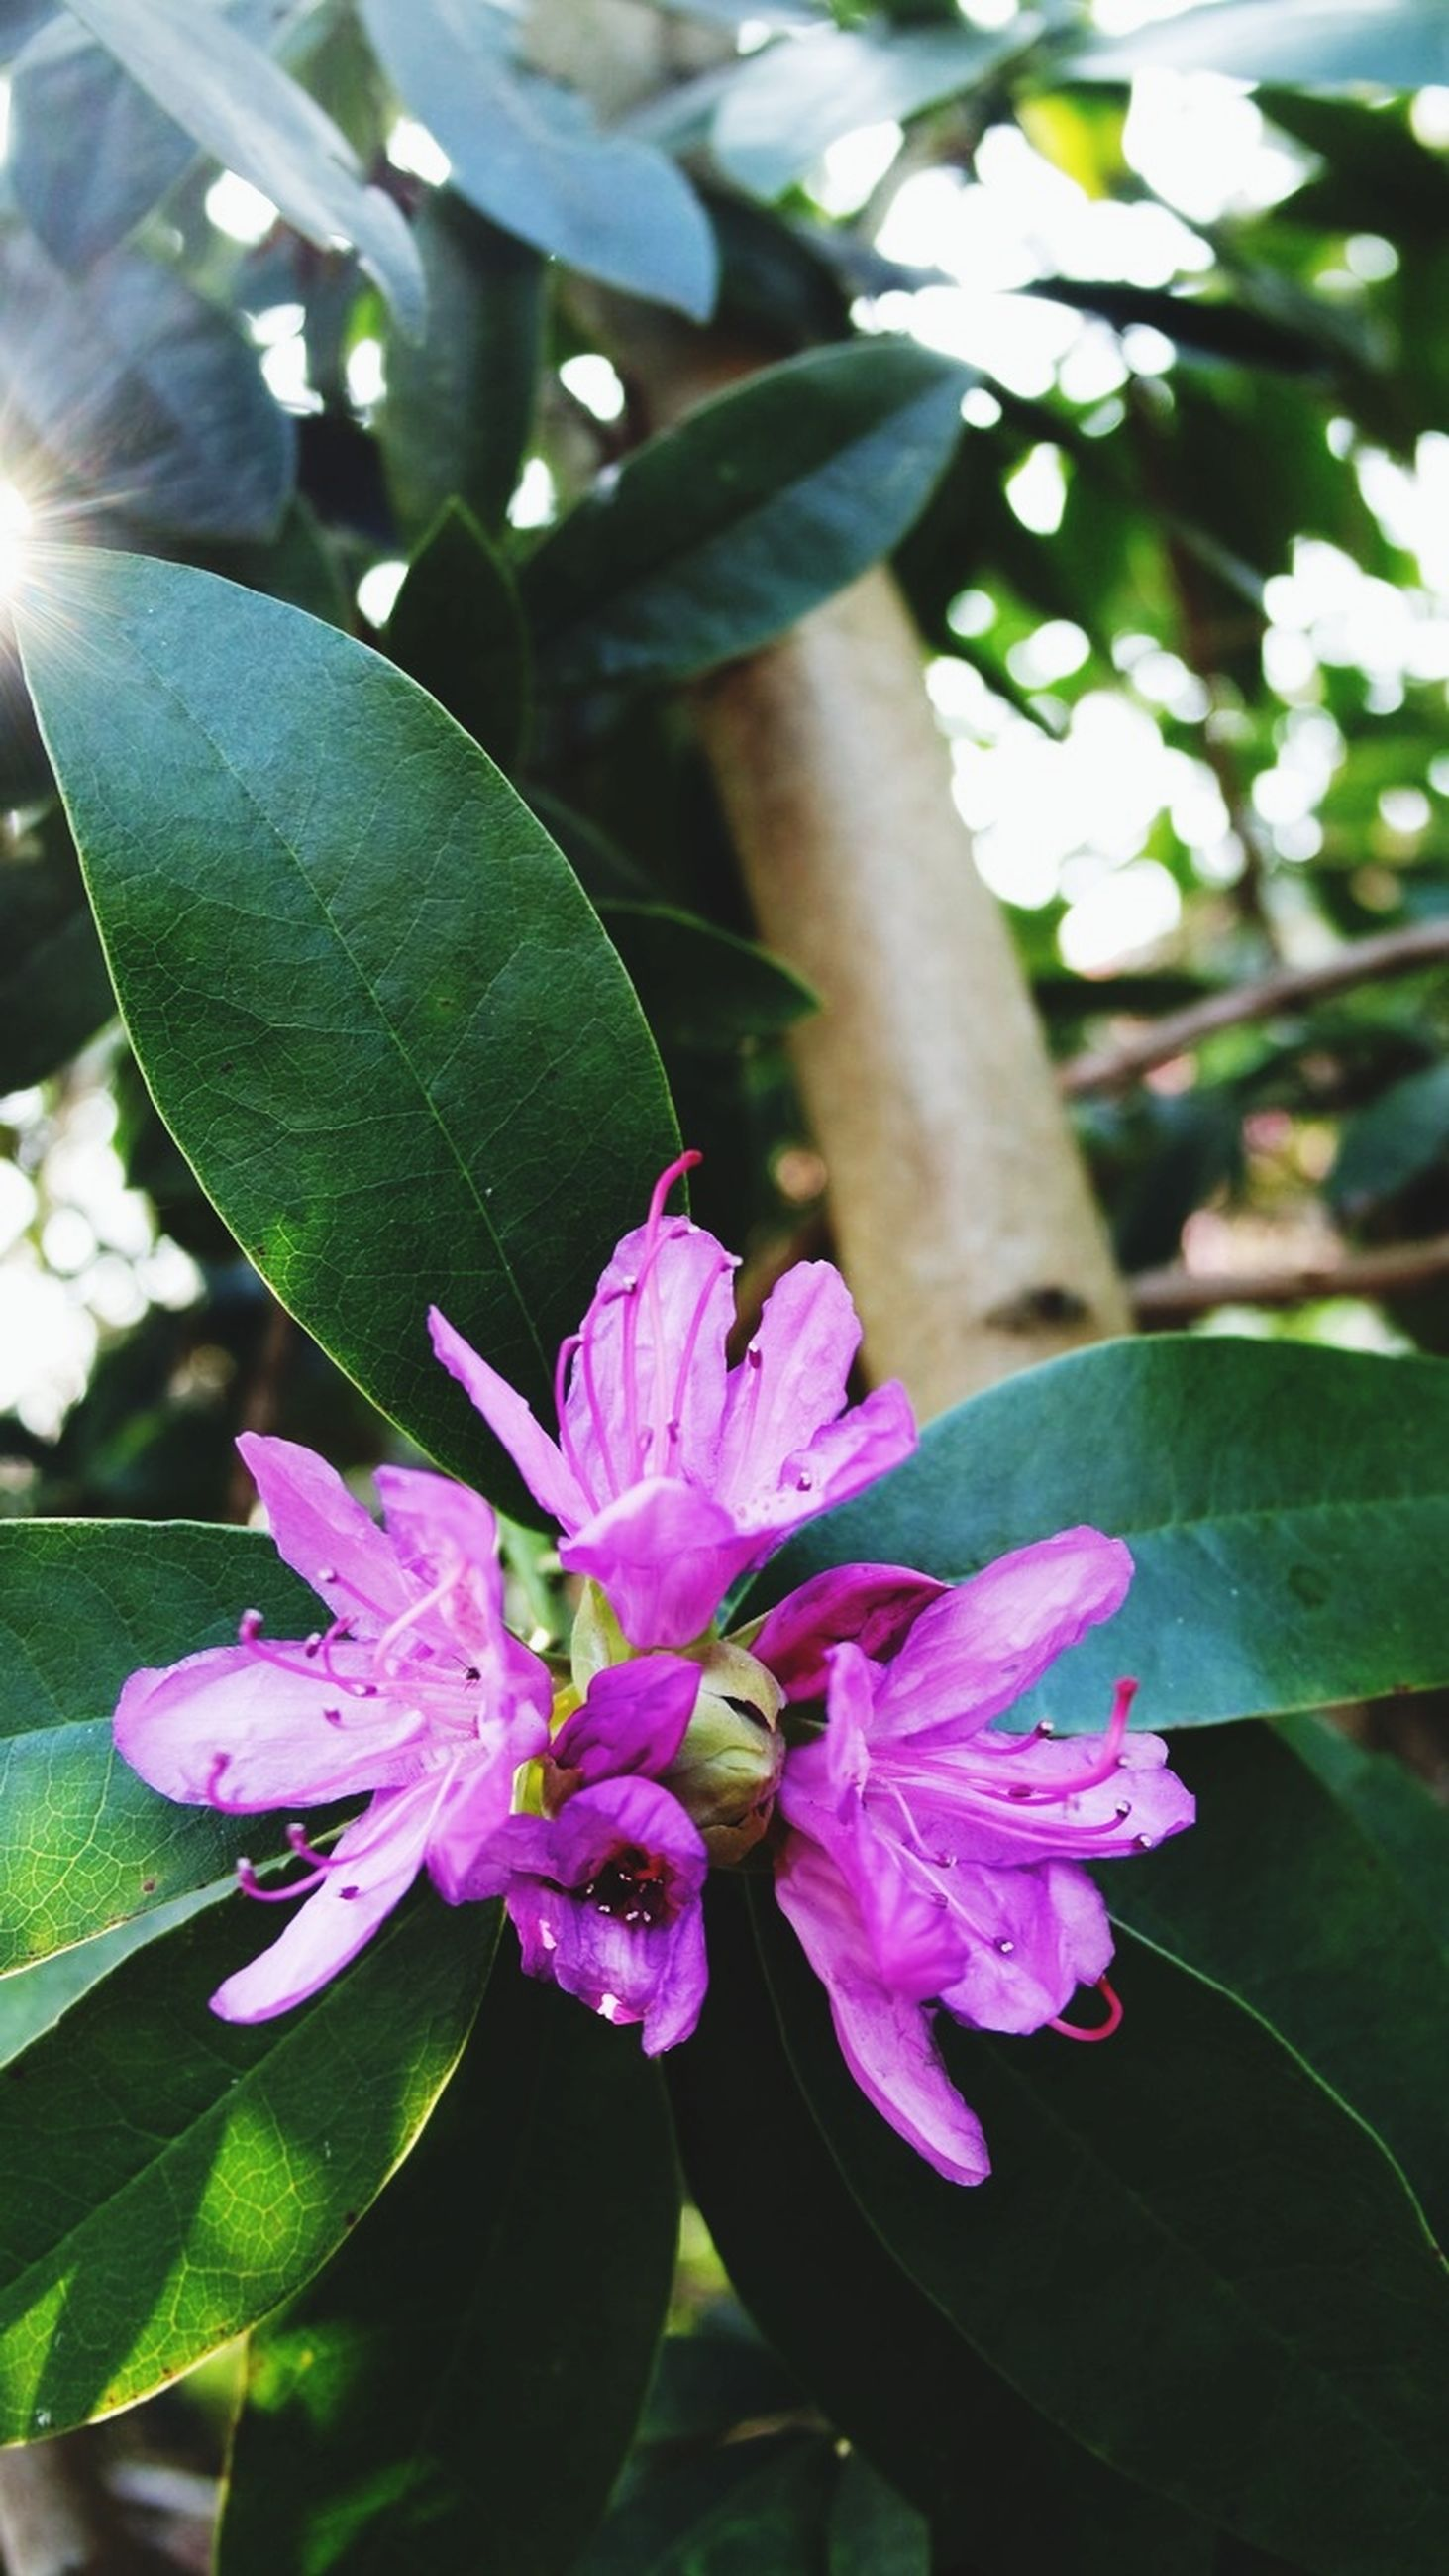 plant, flowering plant, flower, growth, freshness, beauty in nature, vulnerability, fragility, plant part, leaf, close-up, pink color, petal, nature, inflorescence, flower head, day, purple, focus on foreground, no people, outdoors